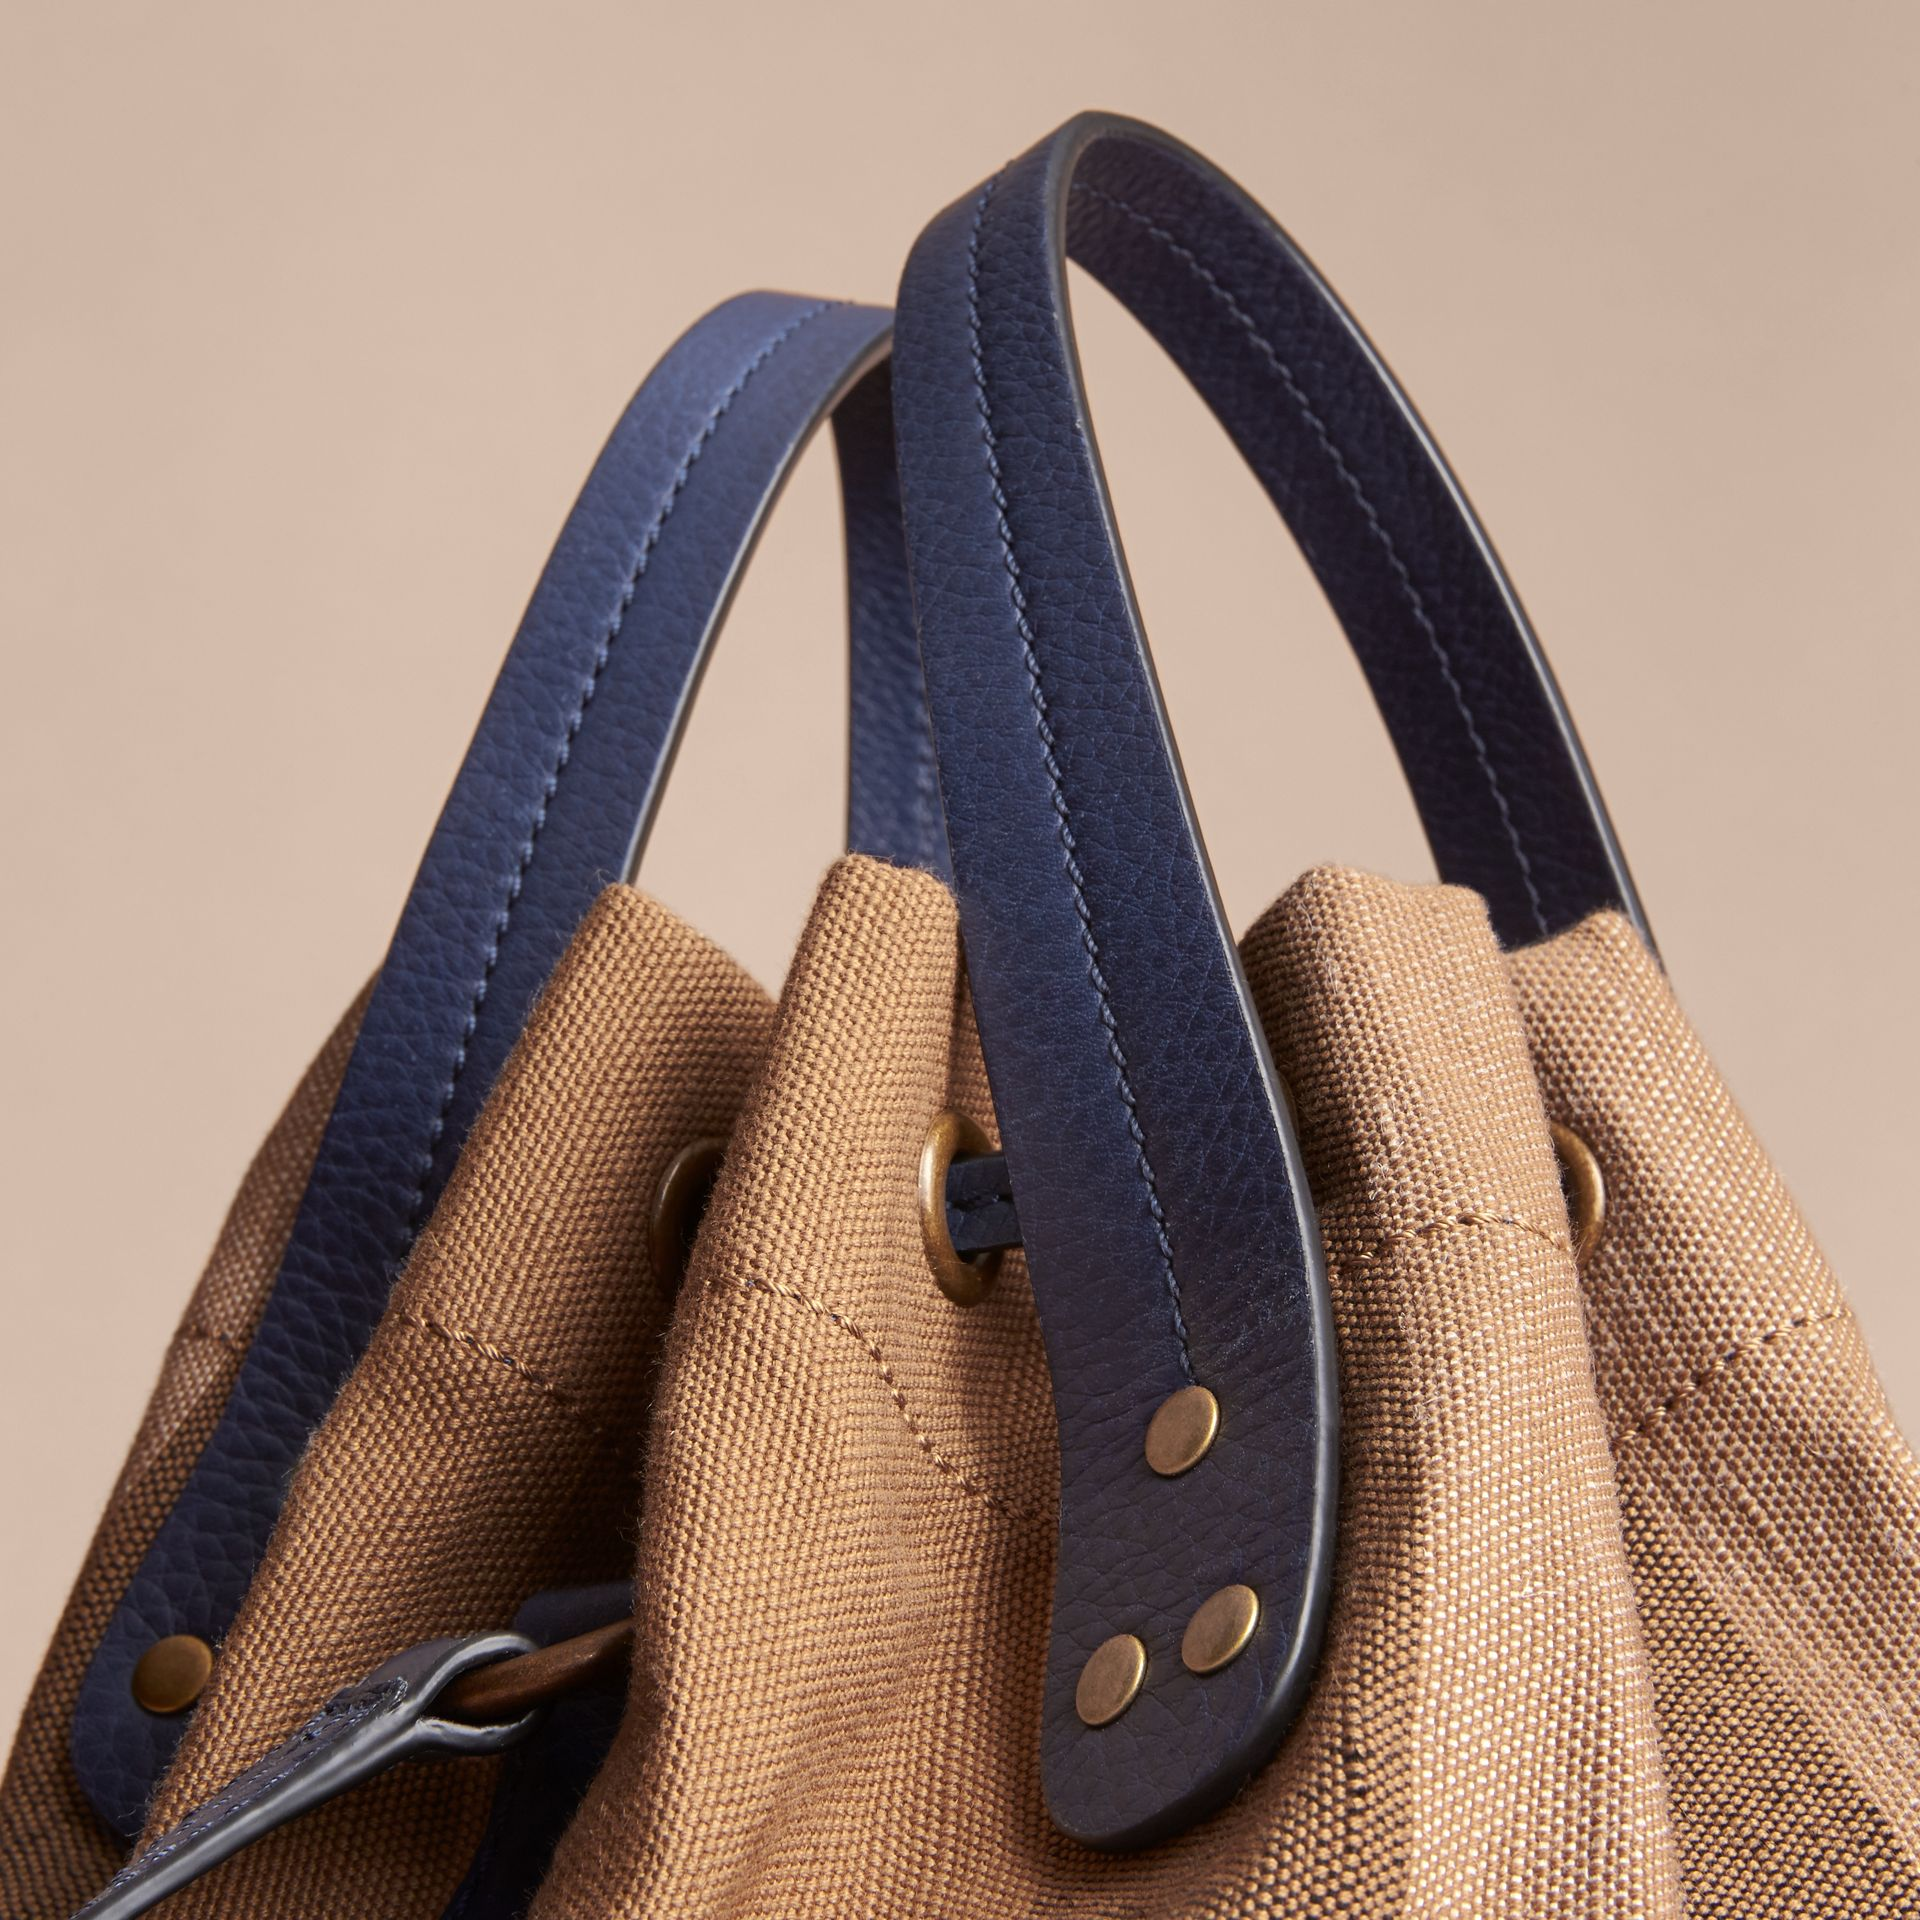 Small Canvas Check and Leather Bucket Bag in Brilliant Navy - Women | Burberry United States - gallery image 7